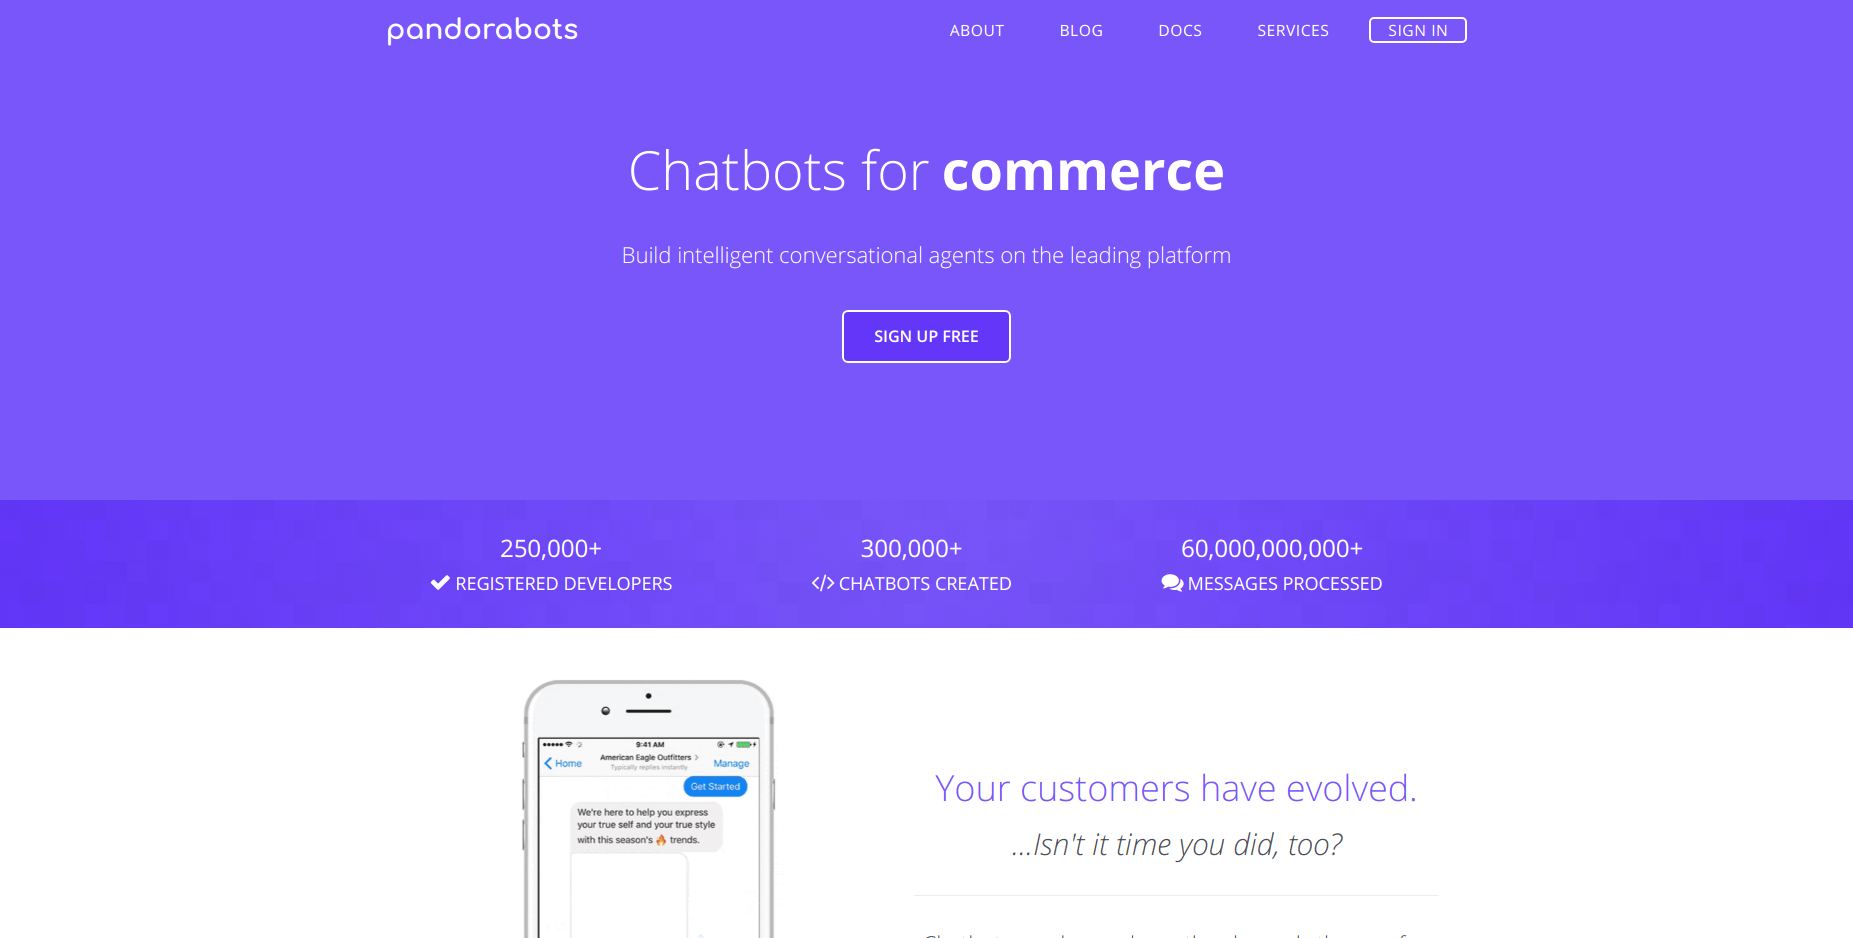 chatbot development company - This platform for chatbots is the oldest and largest one. Currently, it powers over 300 000 chatbots.